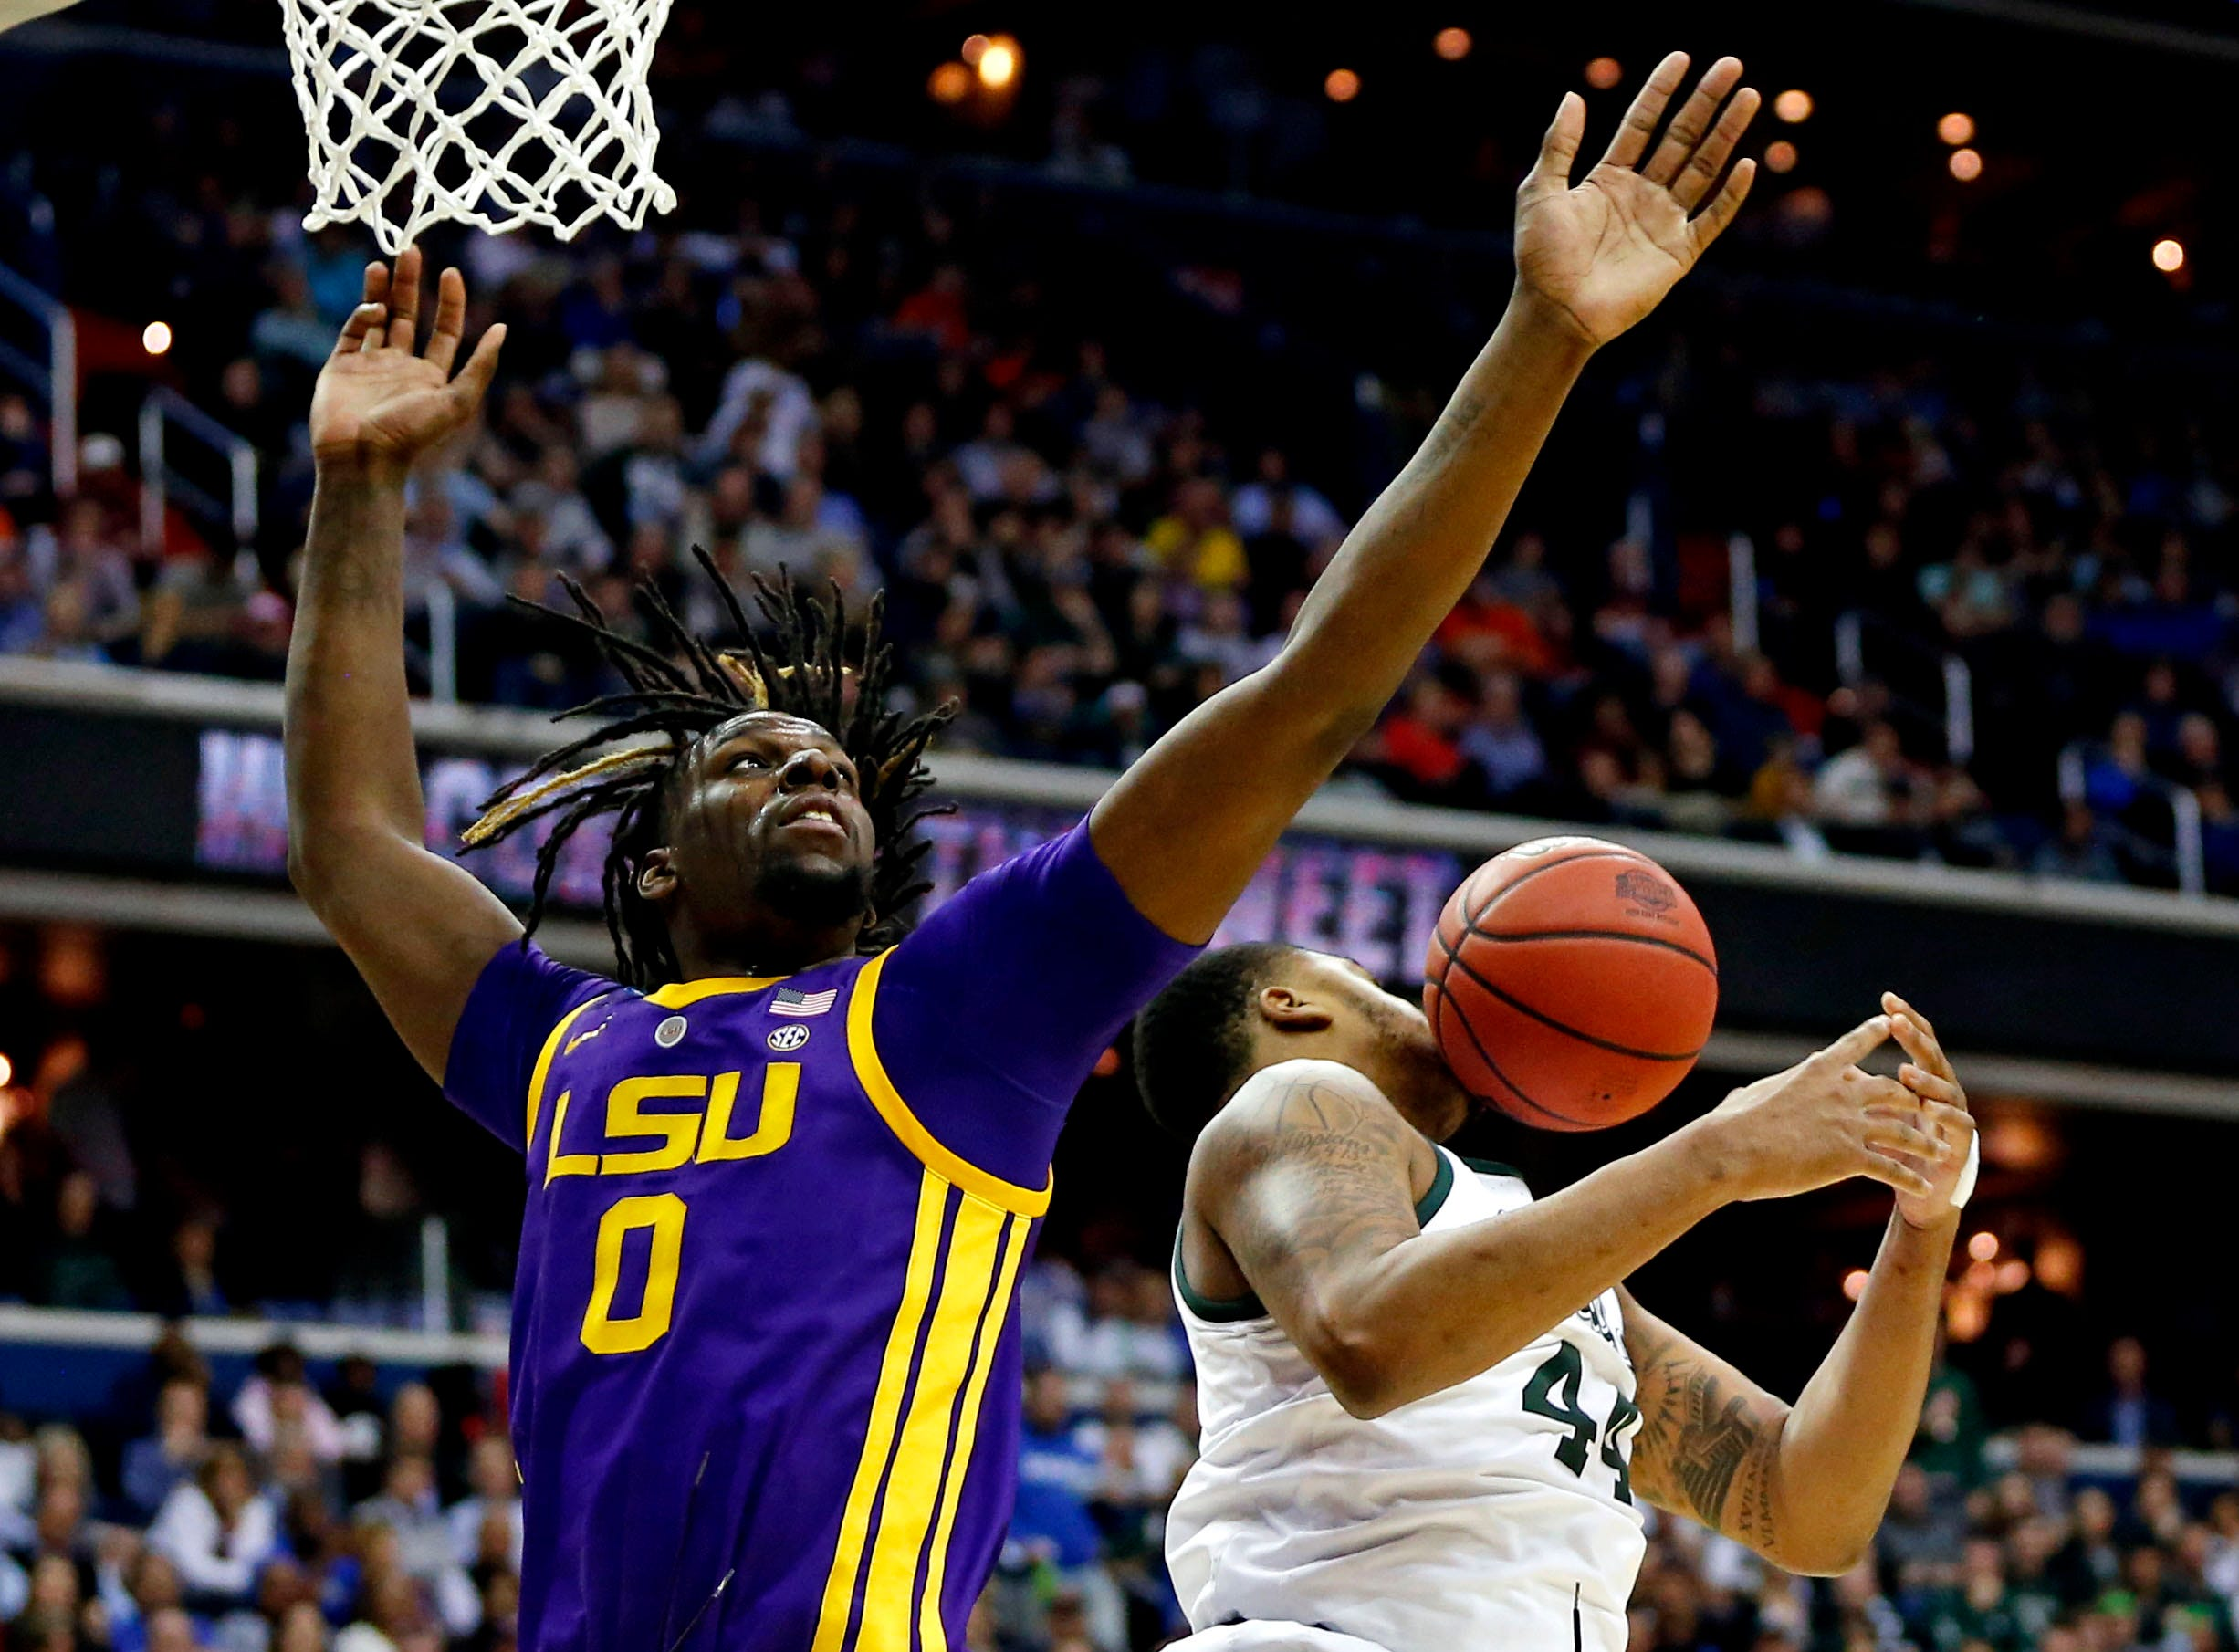 Mar 29, 2019; Washington, DC, USA; LSU Tigers forward Naz Reid (0) and Michigan State Spartans forward Nick Ward (44) go for a rebound during the second half in the semifinals of the east regional of the 2019 NCAA Tournament at Capital One Arena. Mandatory Credit: Amber Searls-USA TODAY Sports